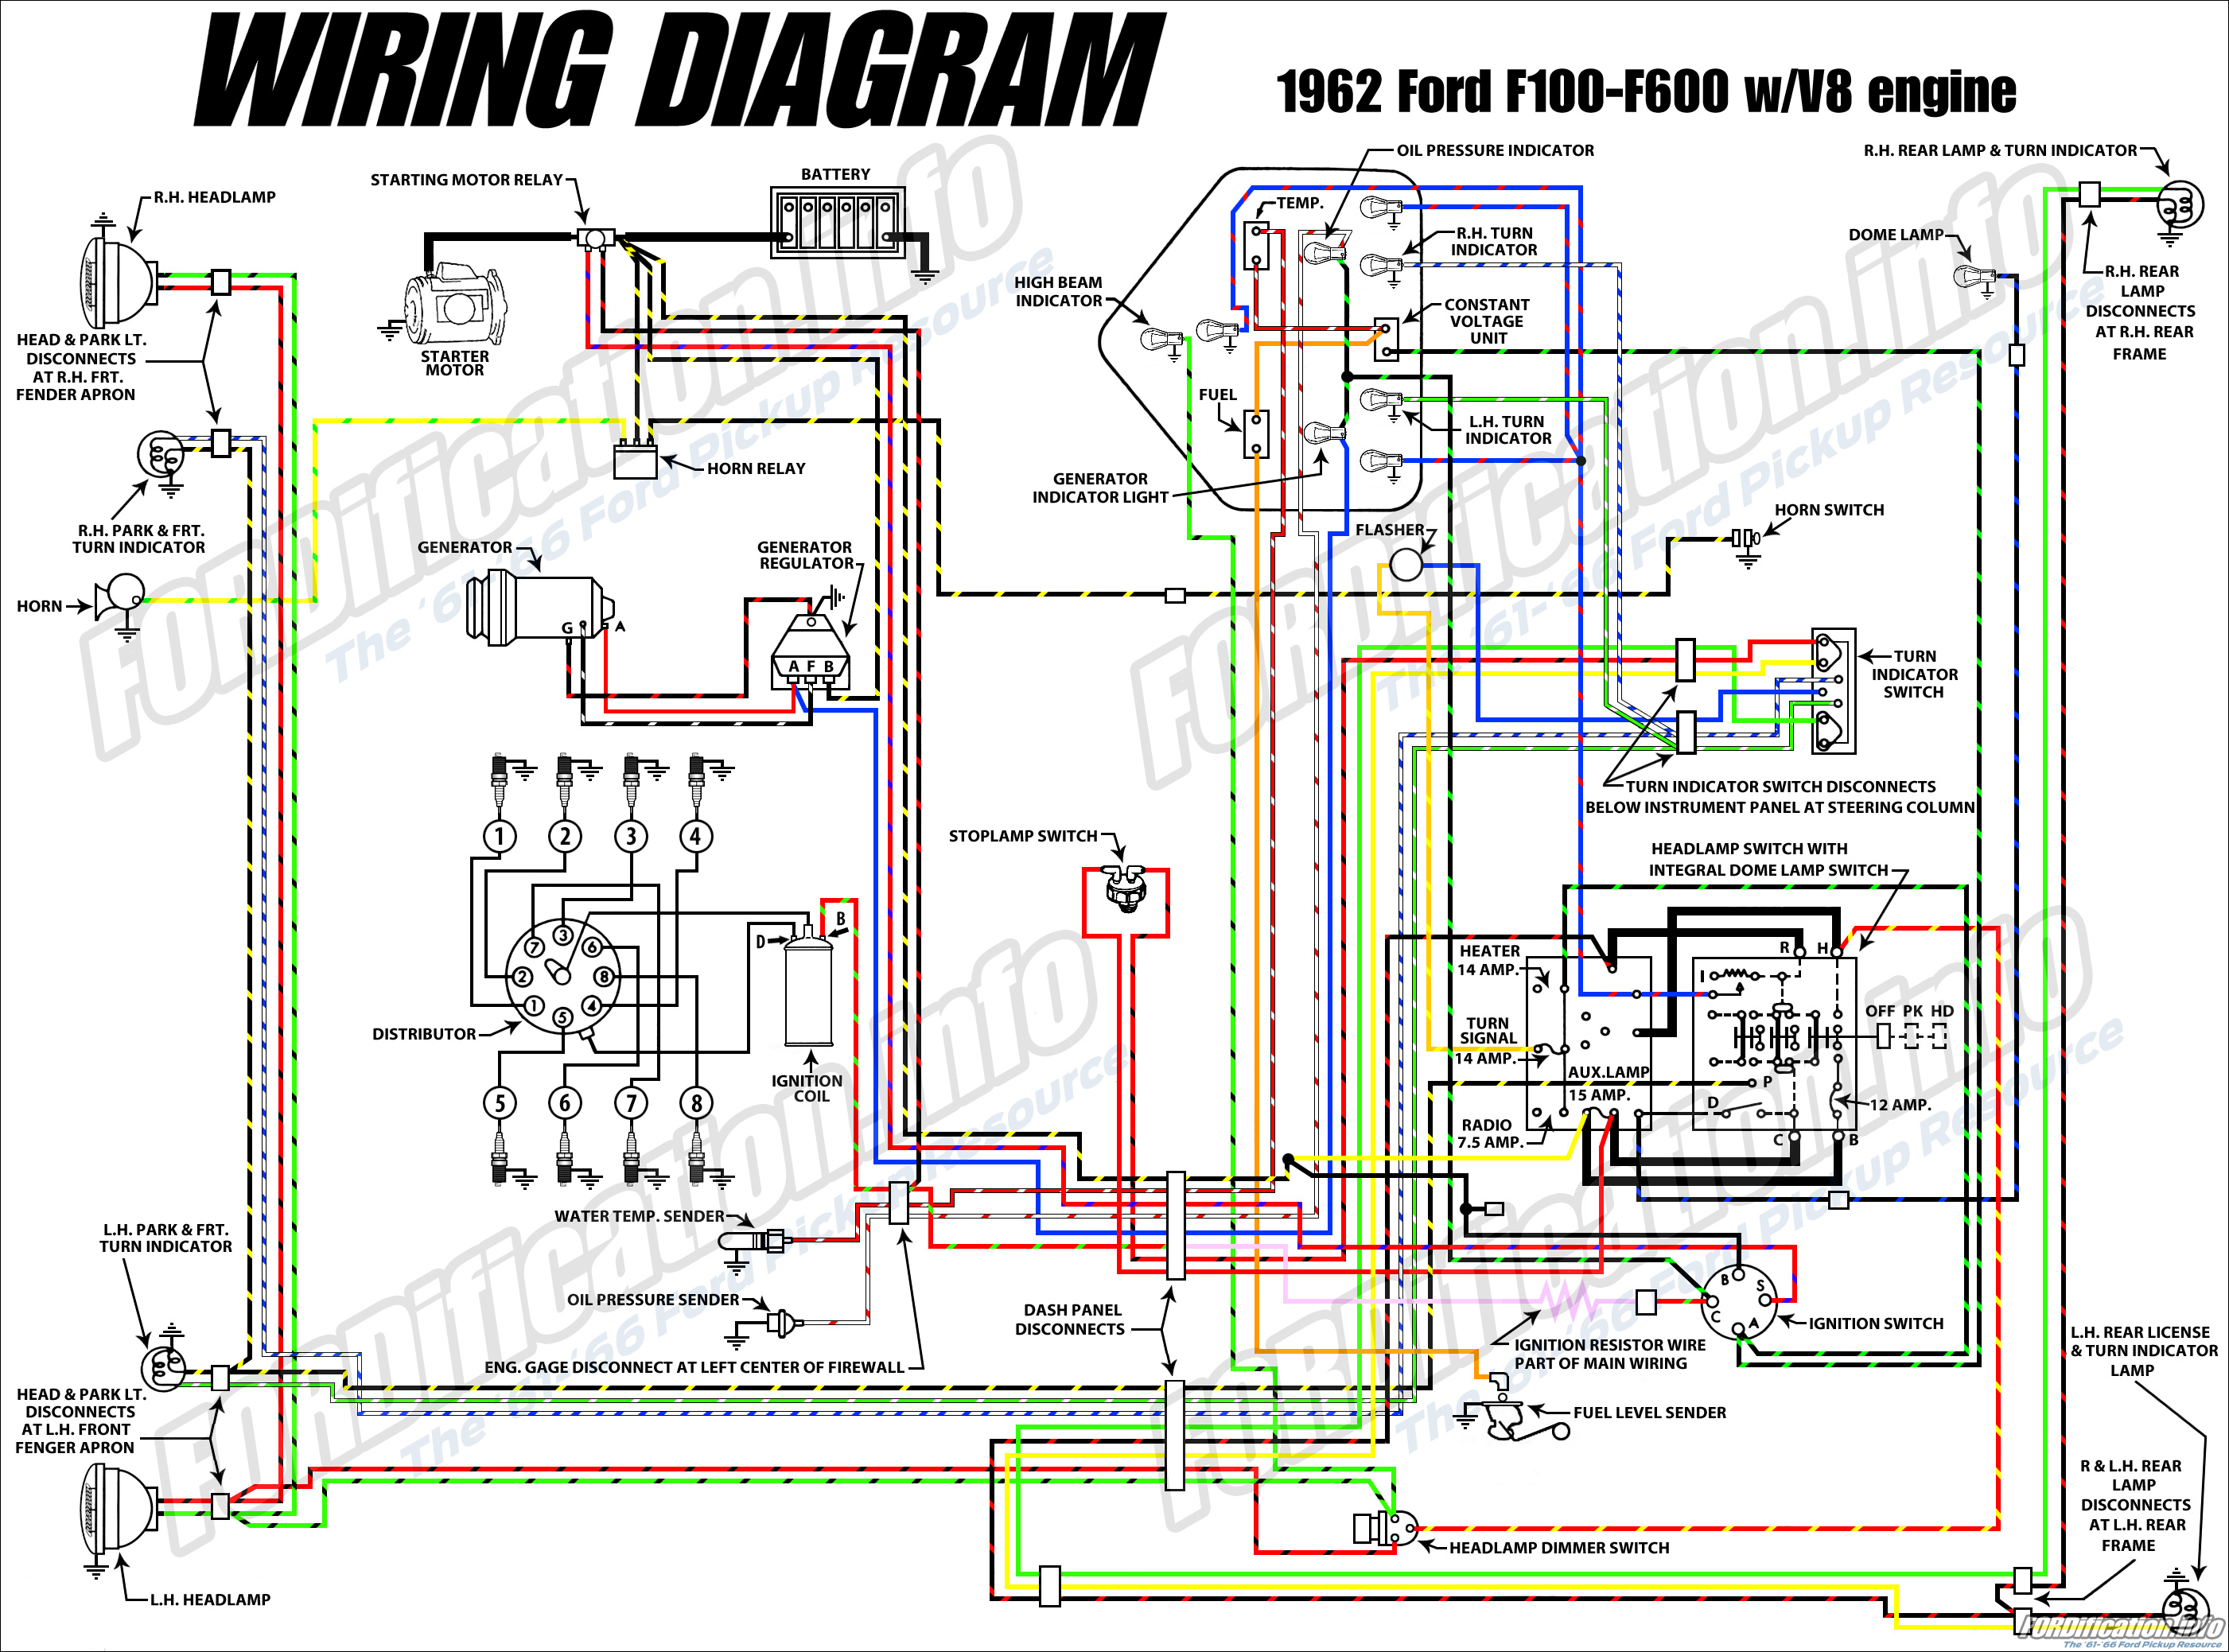 1962fordtruck_masterwiring 1962 ford truck wiring diagrams fordification info the '61 '66 ford truck wiring diagrams at reclaimingppi.co